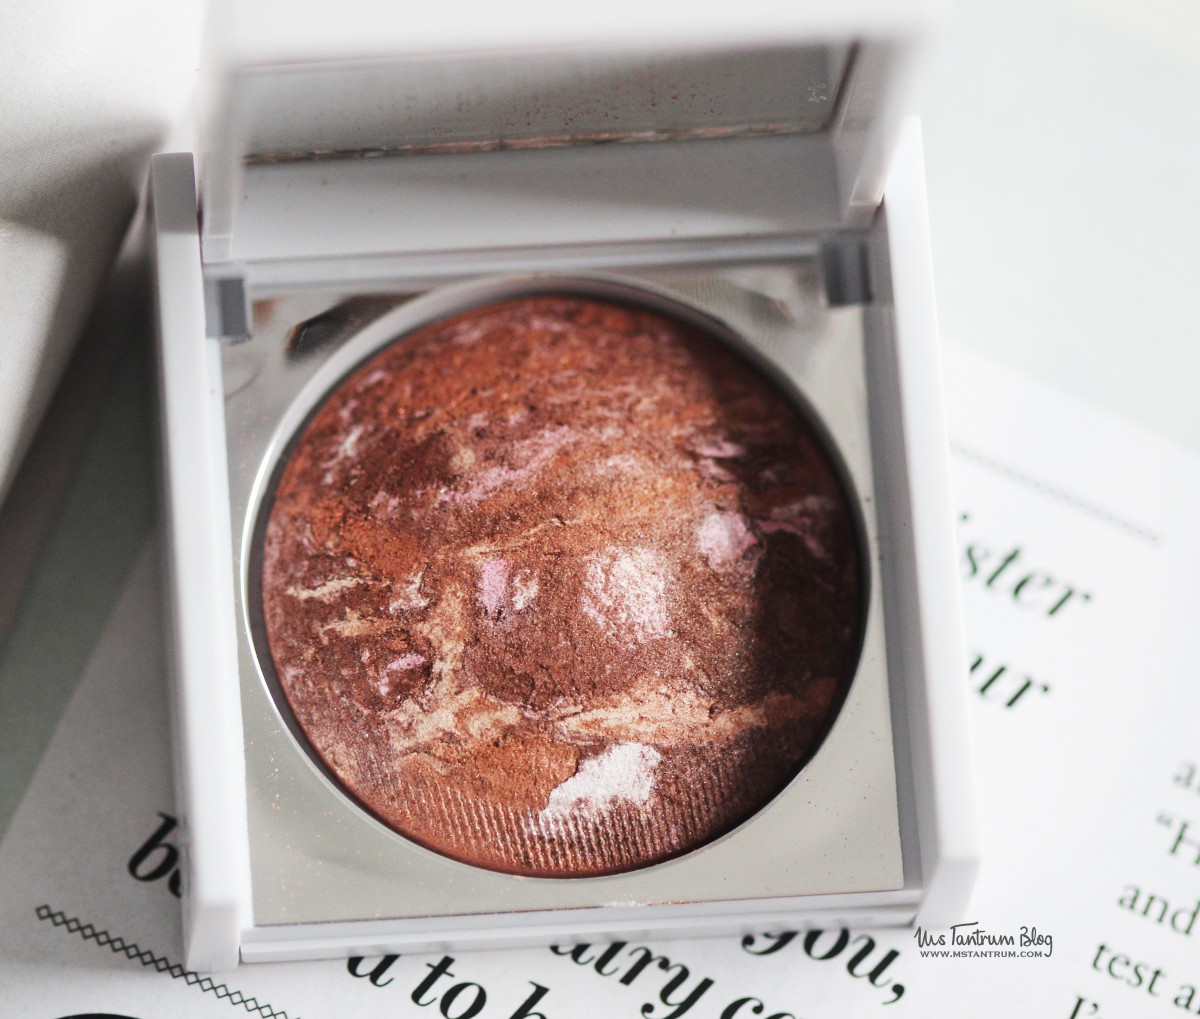 New Cid Cosmetics i-Bronze mini - Rio